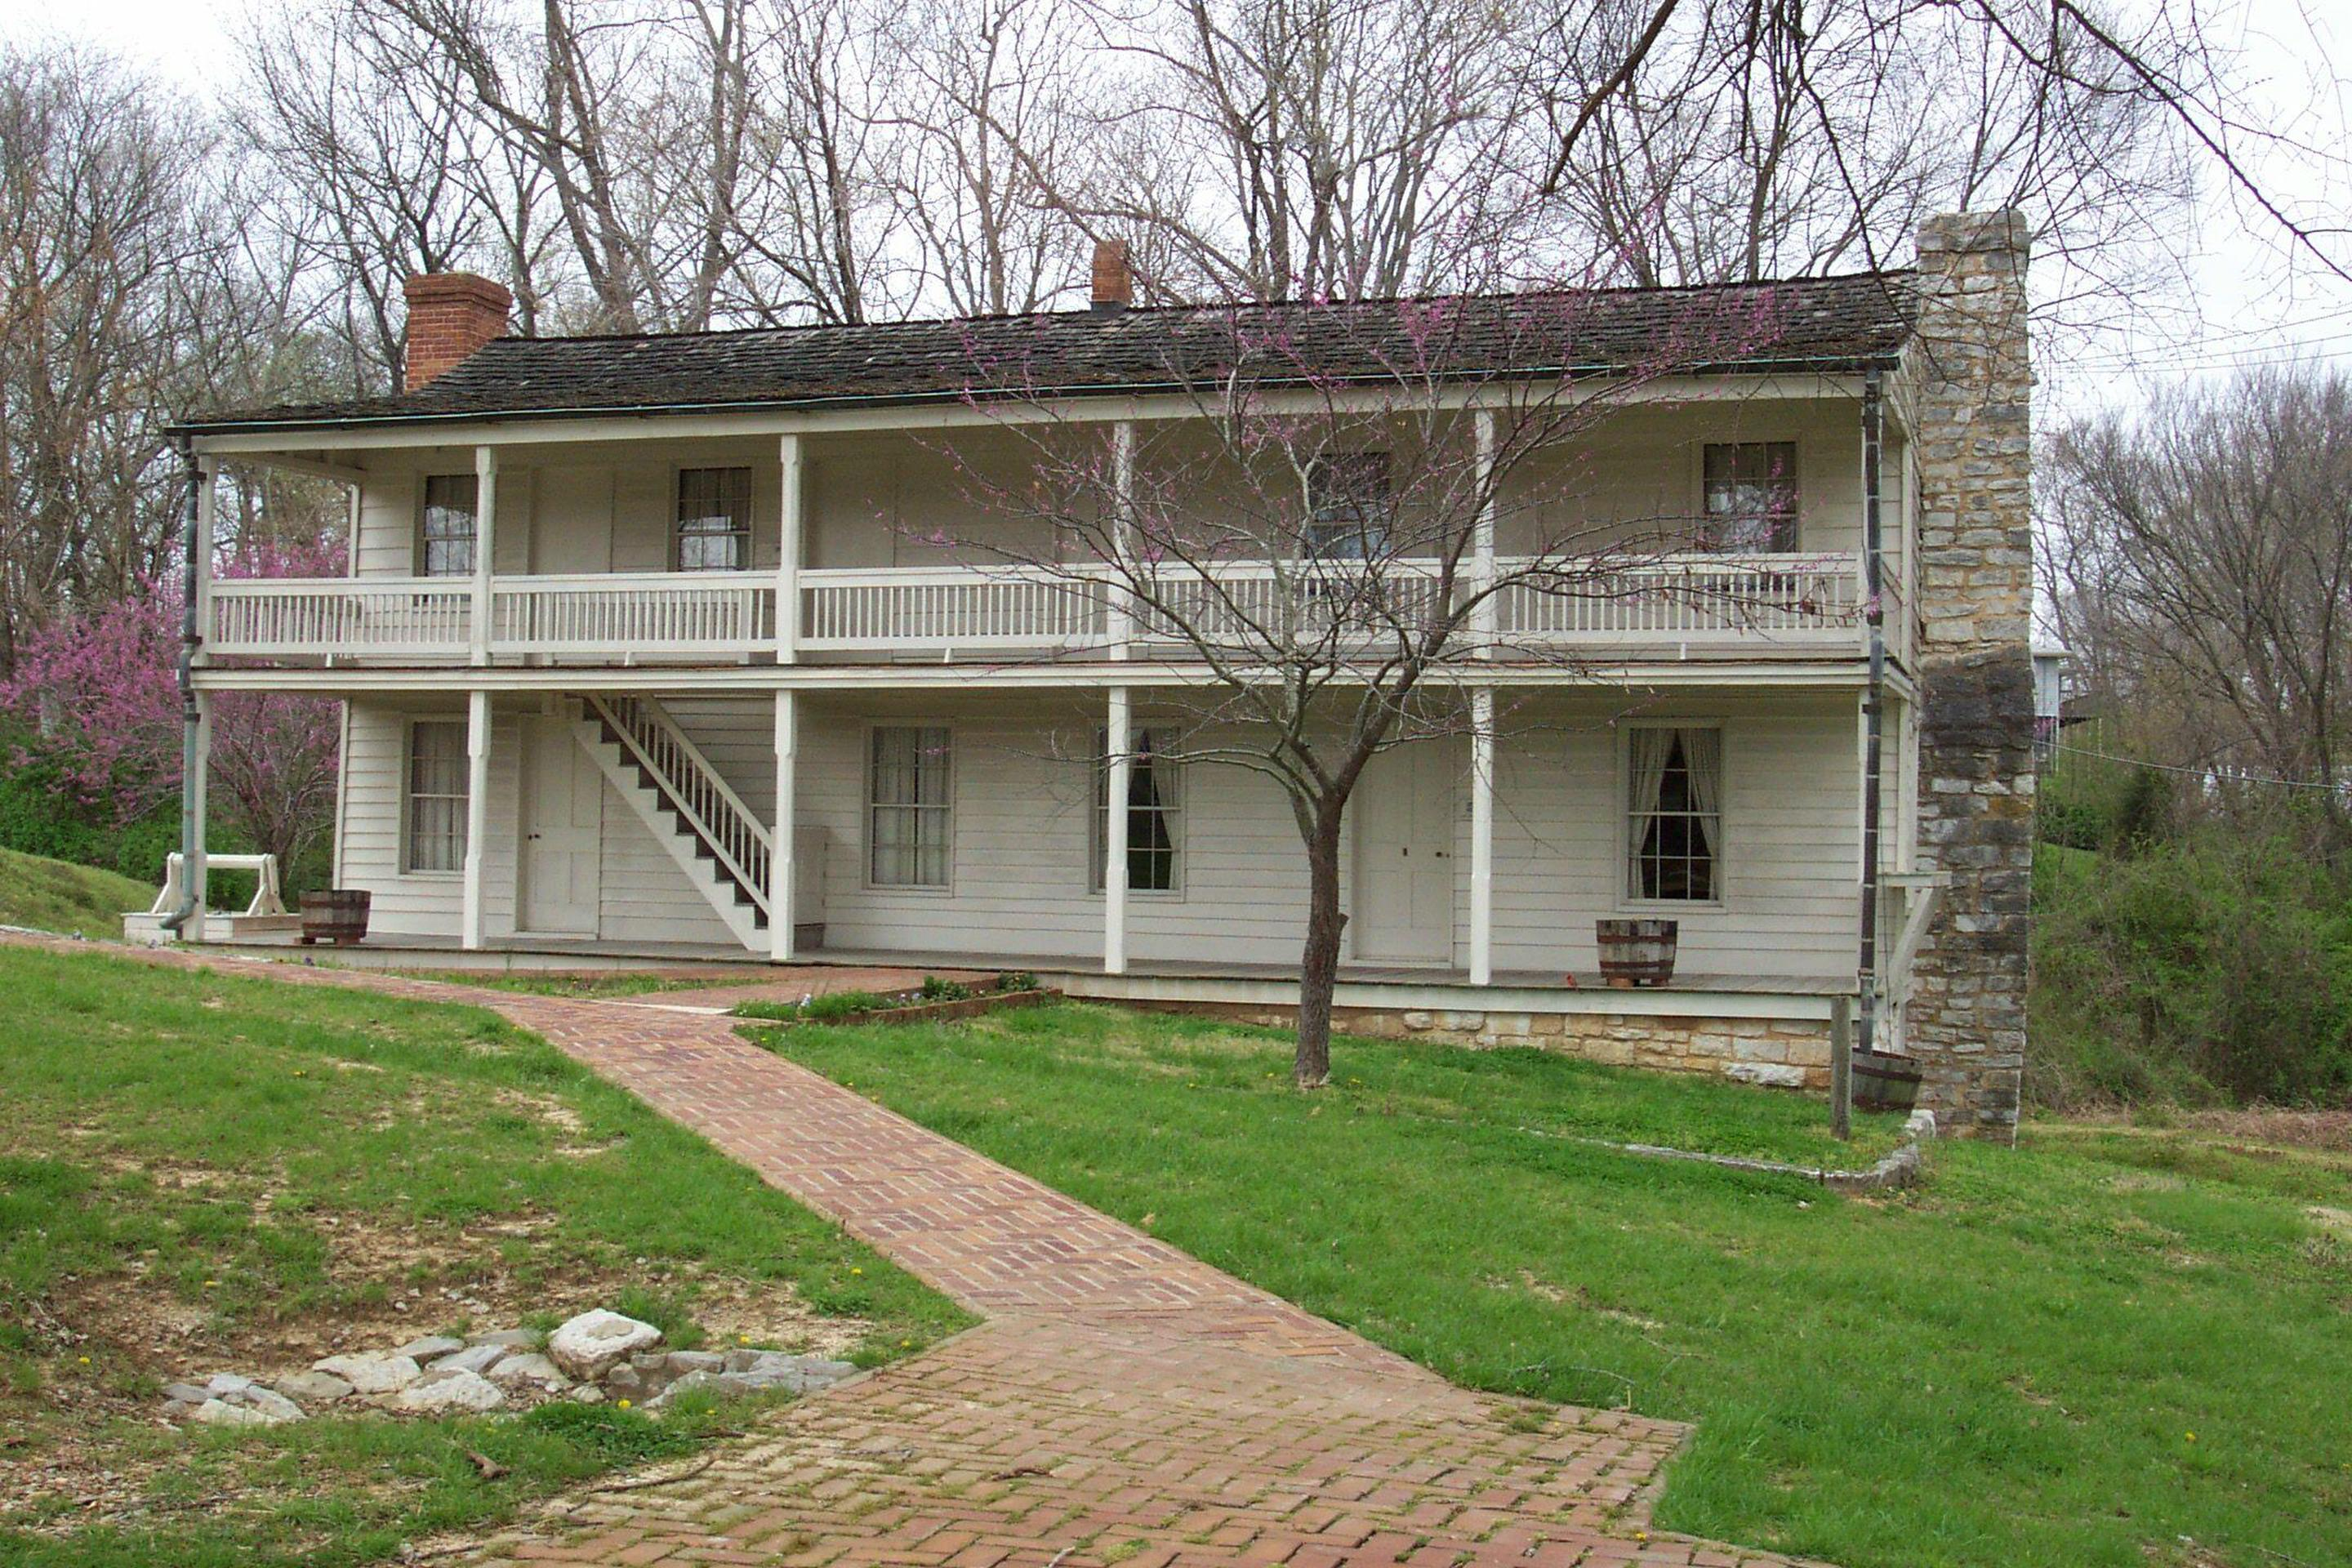 The Dover HotelThe Dover Hotel, site of the first major Civil War surrender.